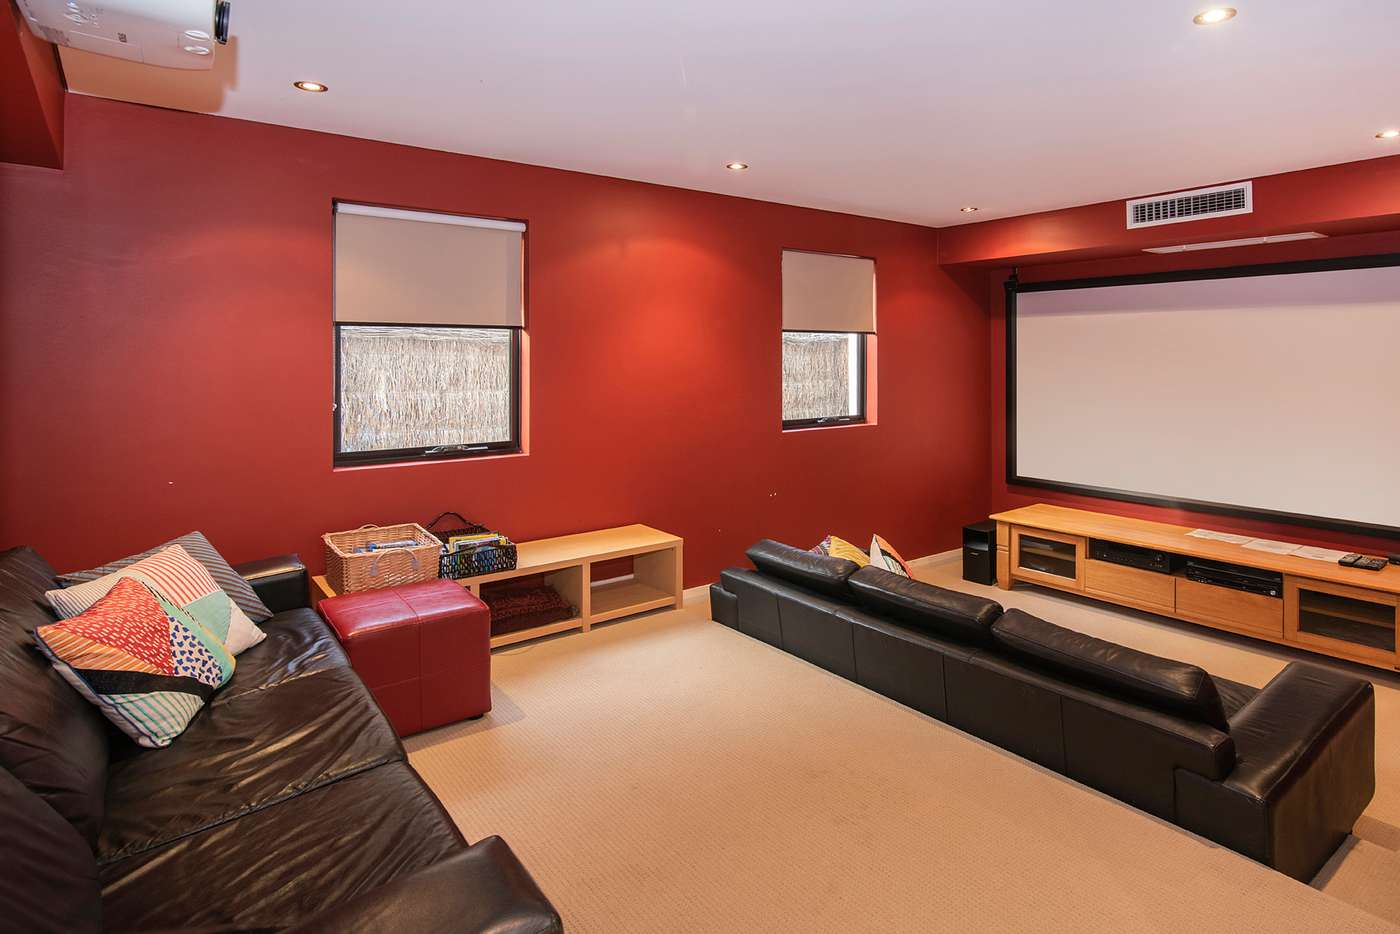 Seventh view of Homely house listing, 23/77 Gifford Road, Dunsborough WA 6281